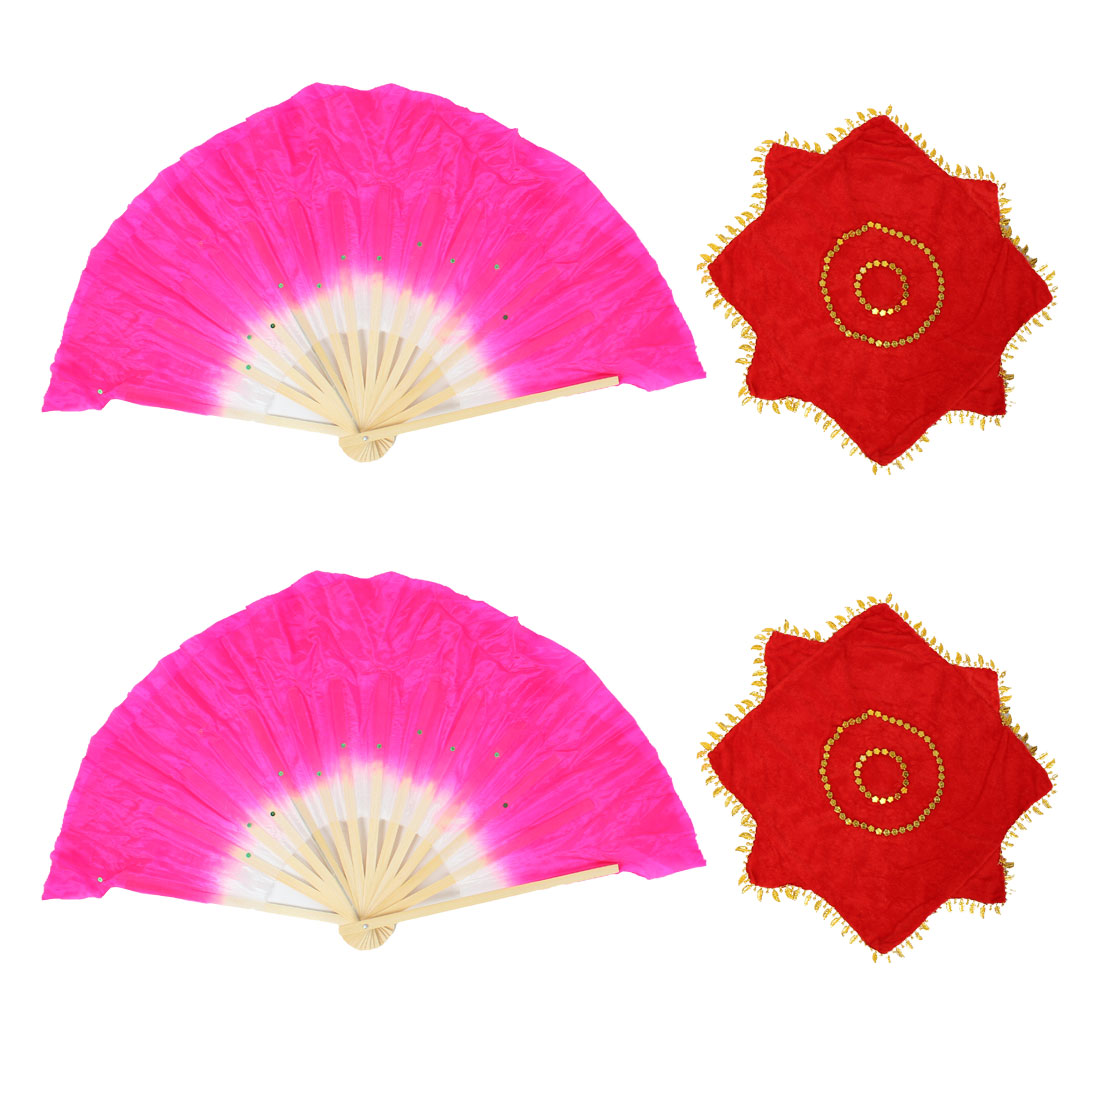 2 Pcs Shiny Sequins Decoration Dancing Bamboo Fans w Dance Handkerchieves 2pcs